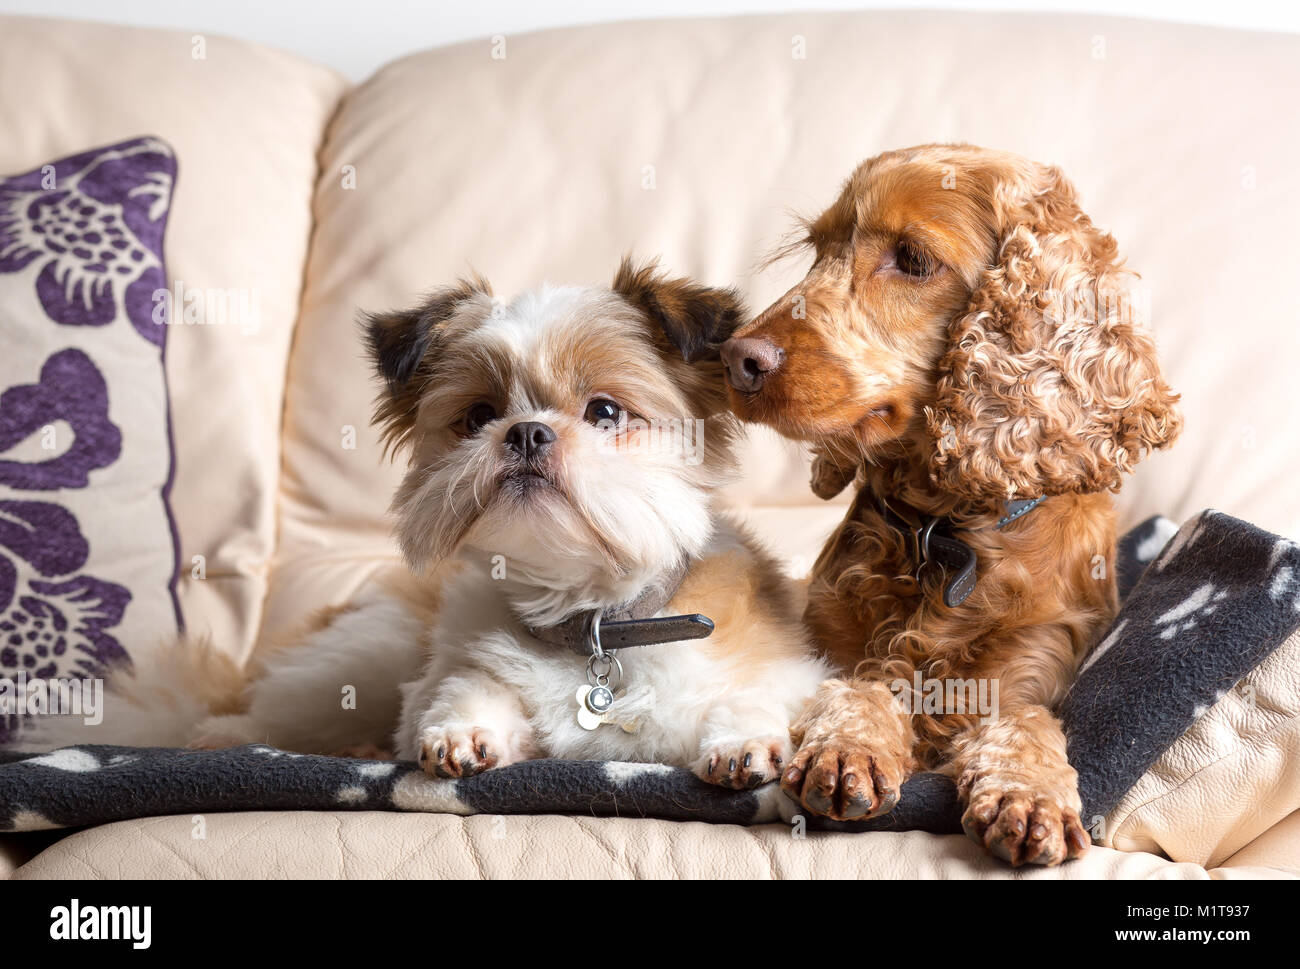 Indoor pet portrait of pomeranian shih tzu & red cocker spaniel, snuggled together on leather sofa in family - Stock Image